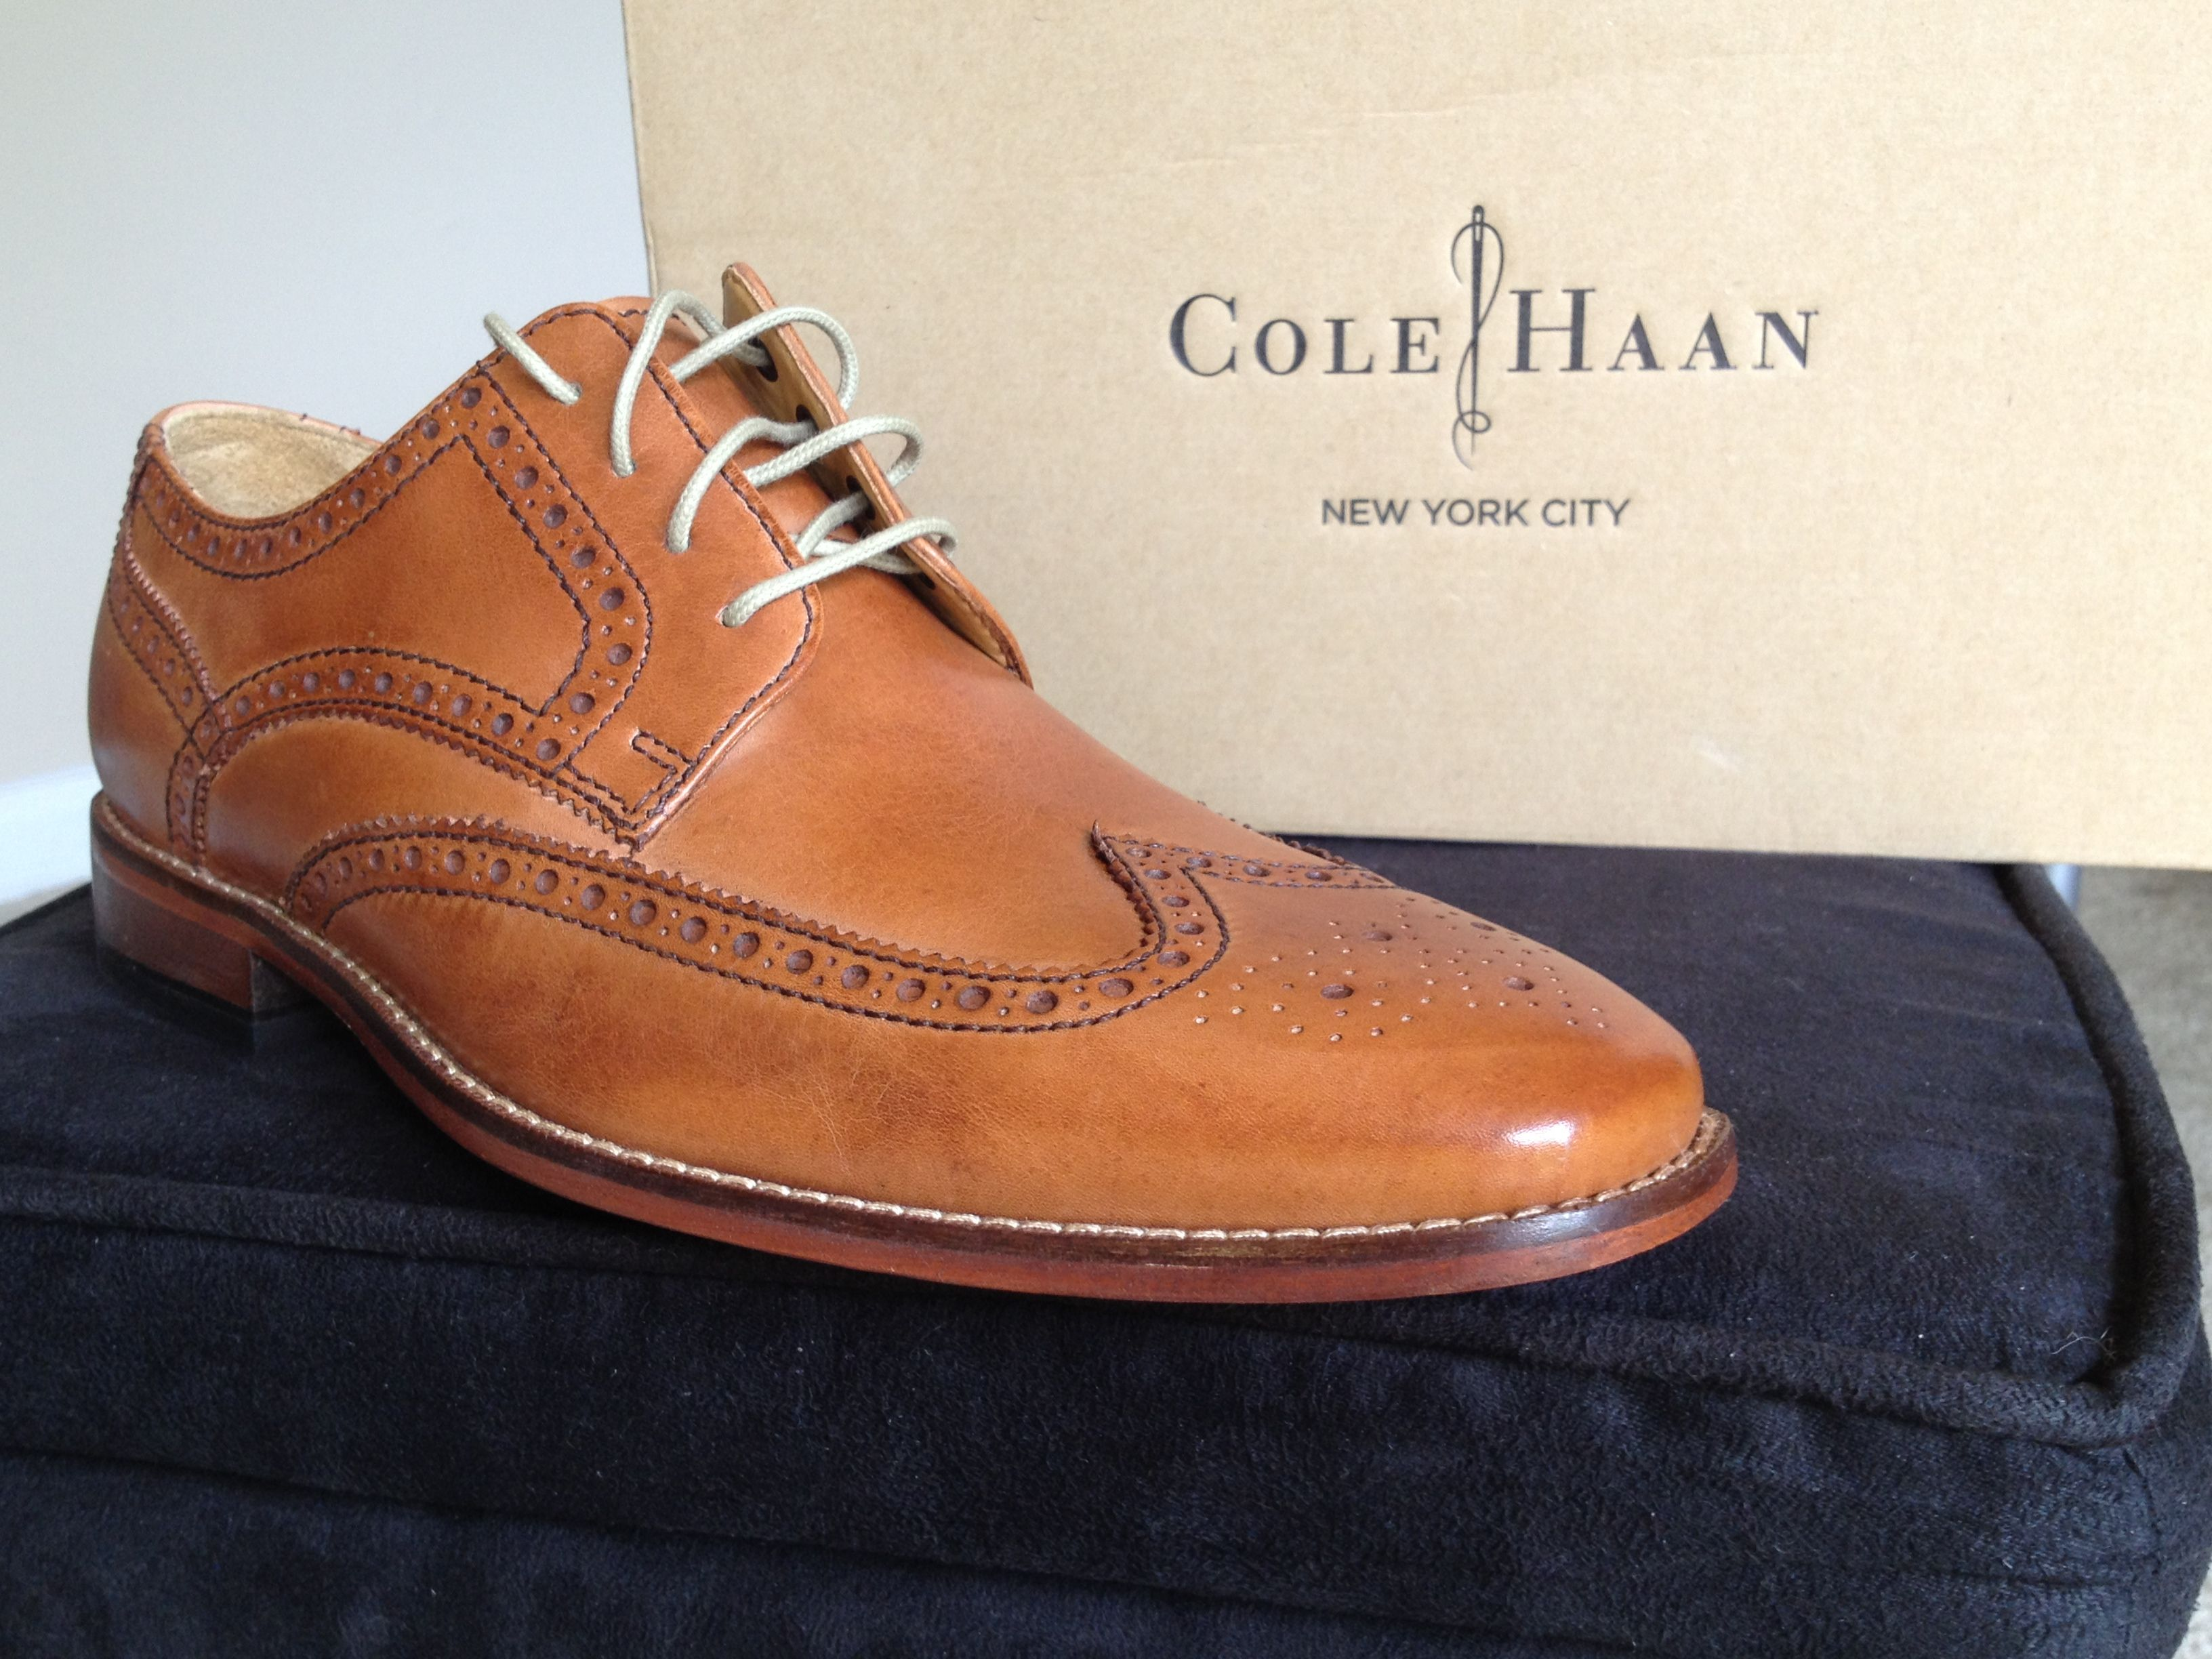 The Cole Haan Air Giraldo Wingtip